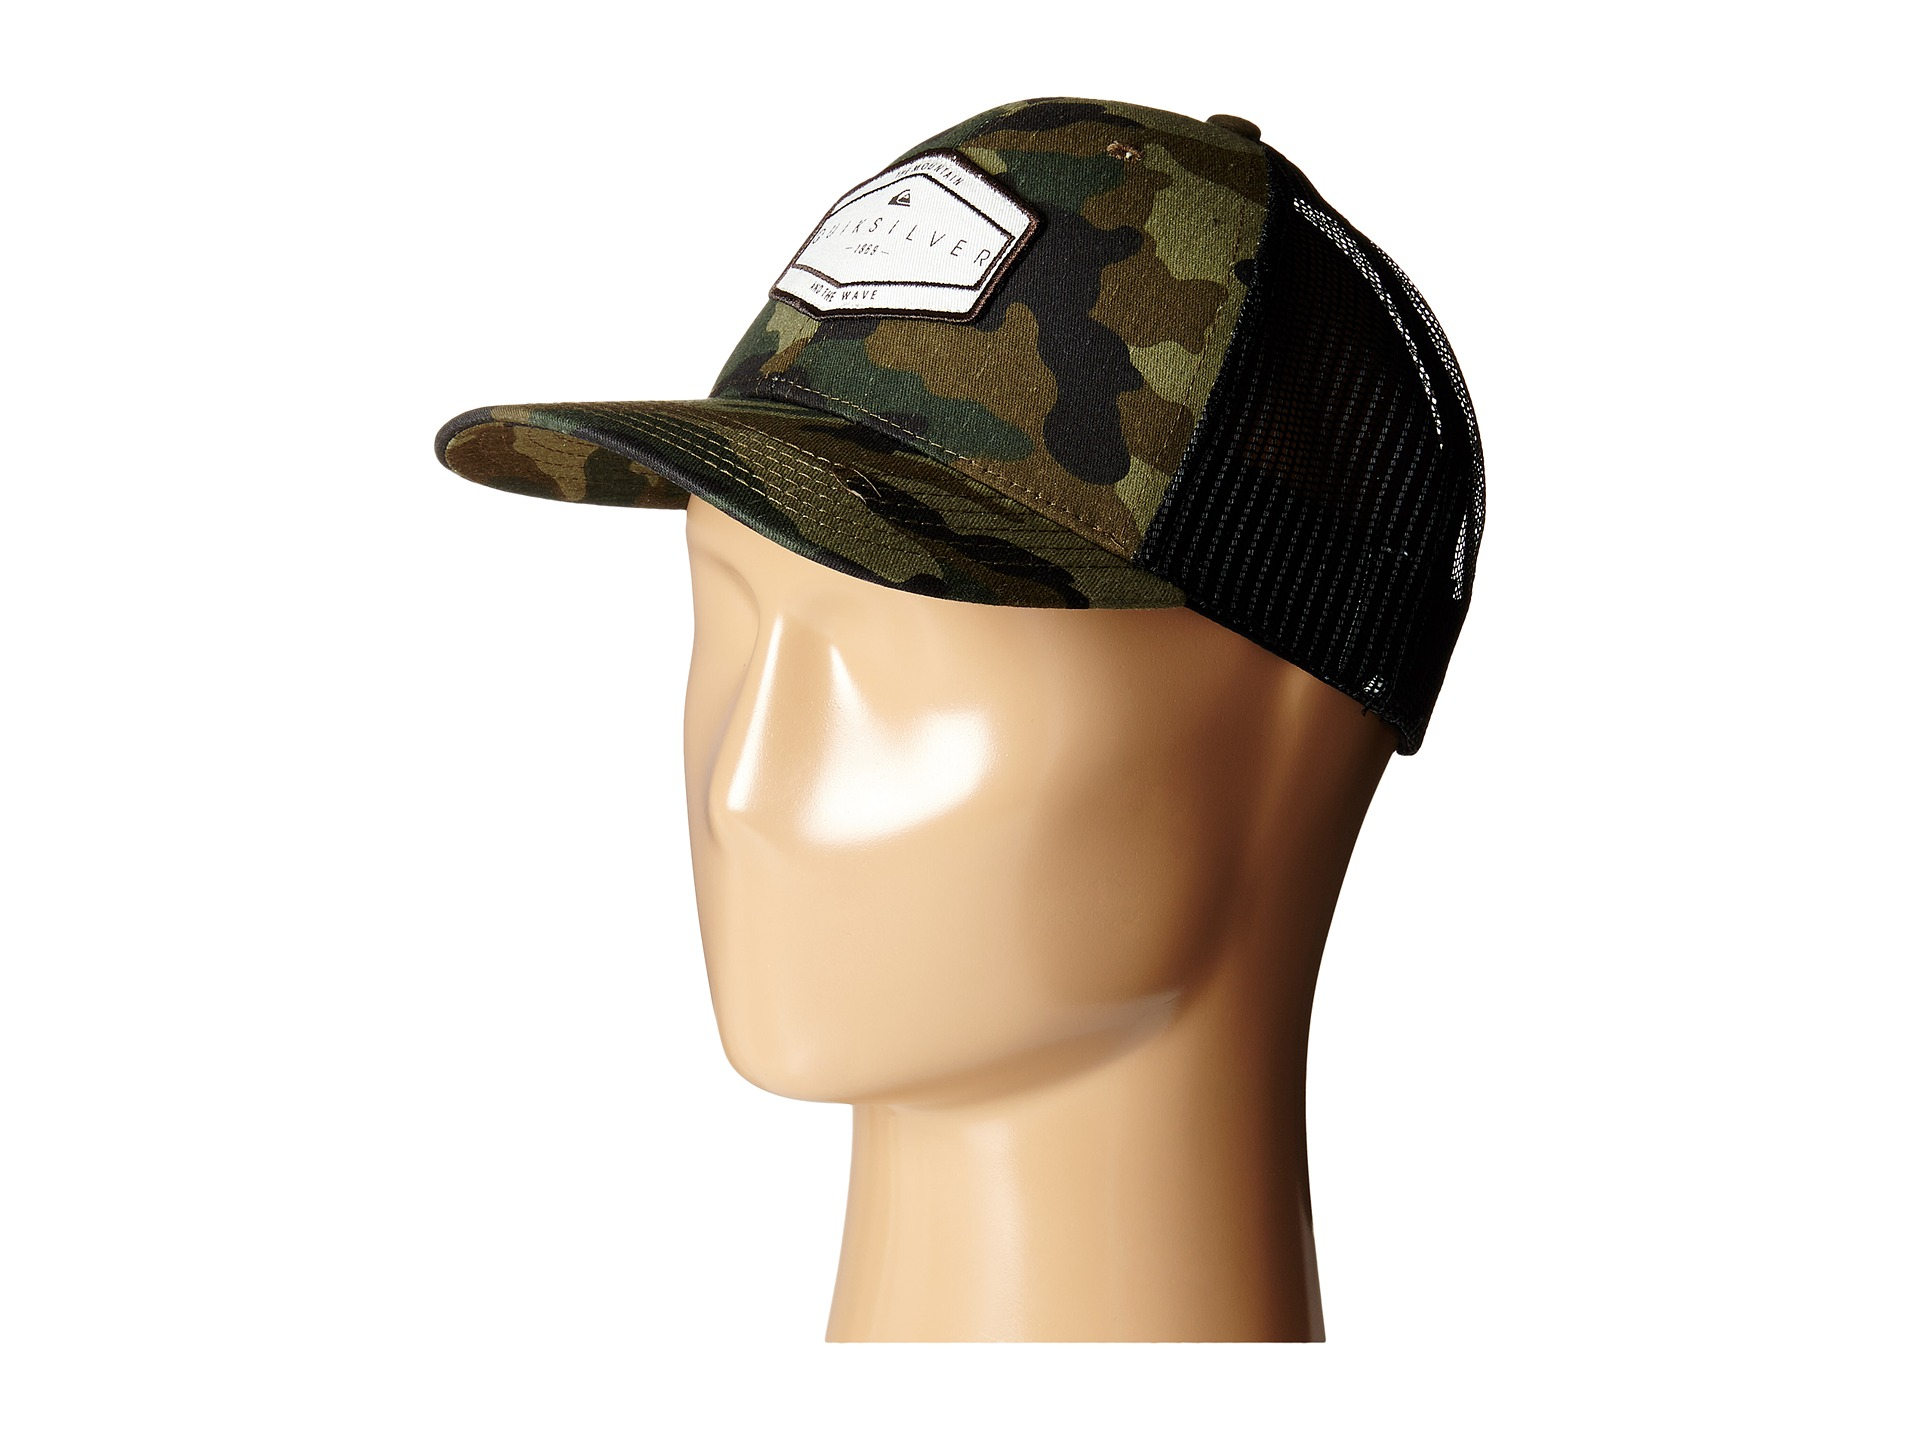 ... order lyst quiksilver forever hat in green for men 945f3 c74ed 44a428487314